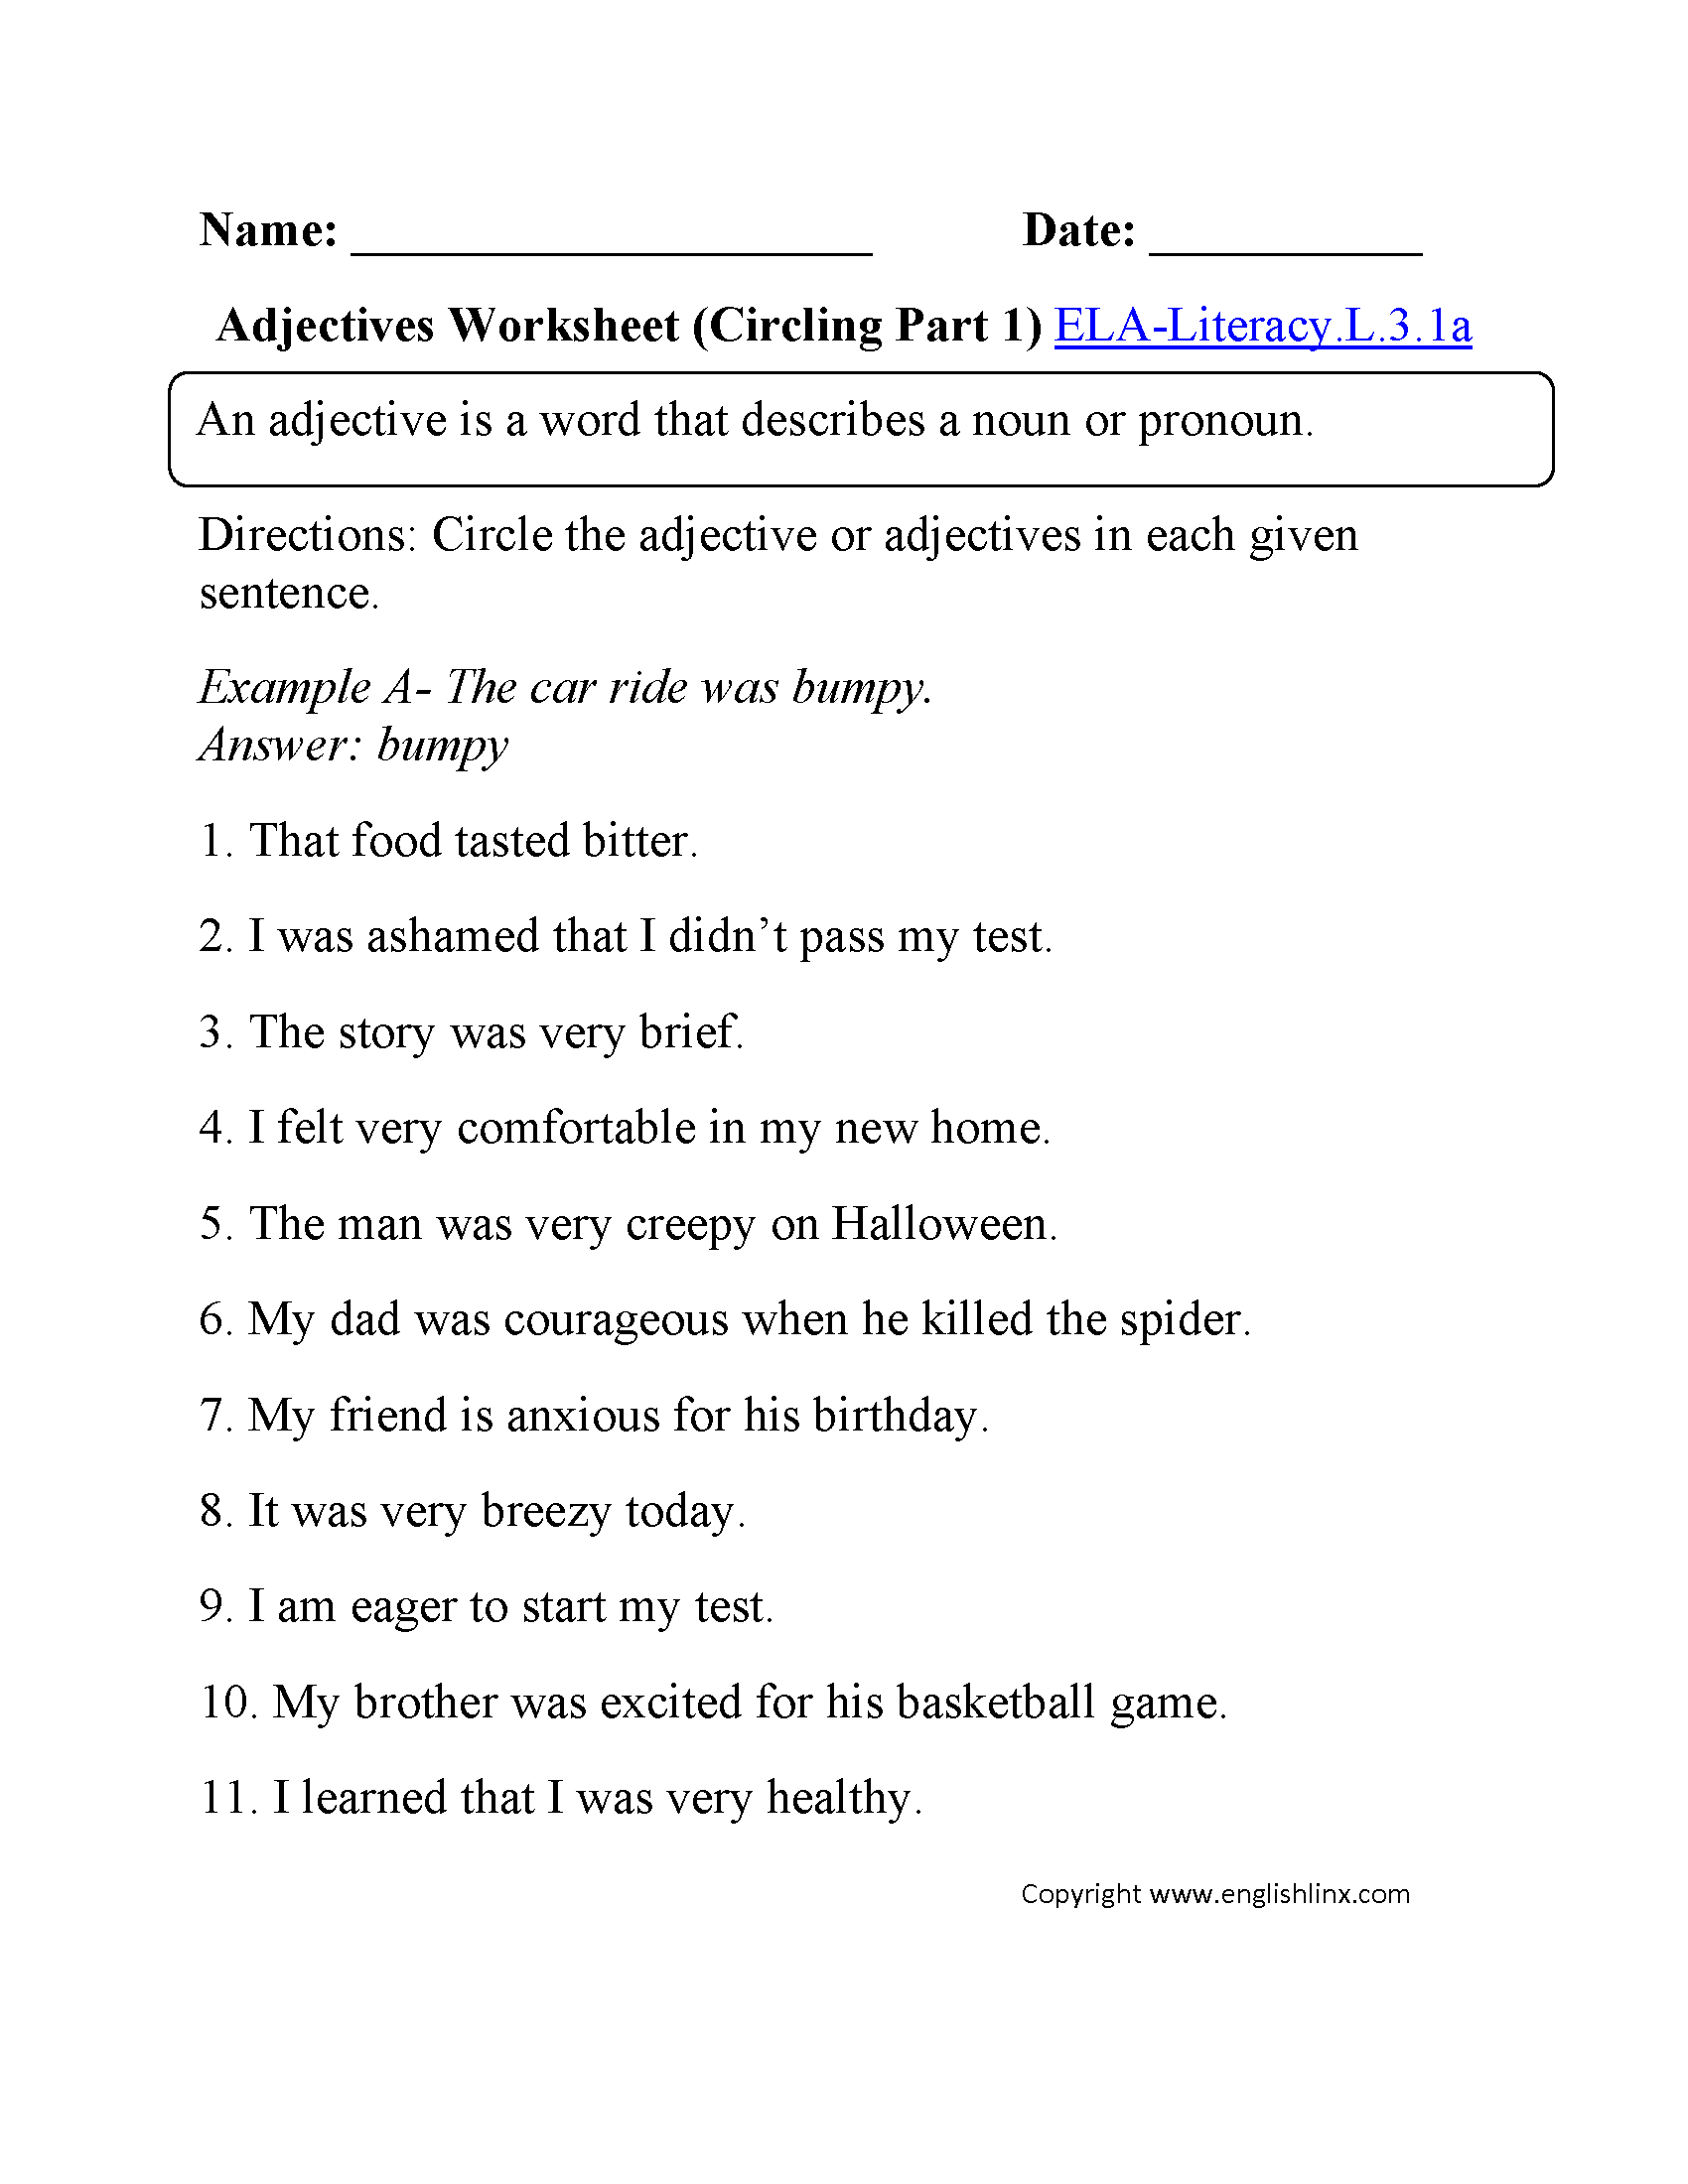 Adjectives Worksheet 1 L 3 1